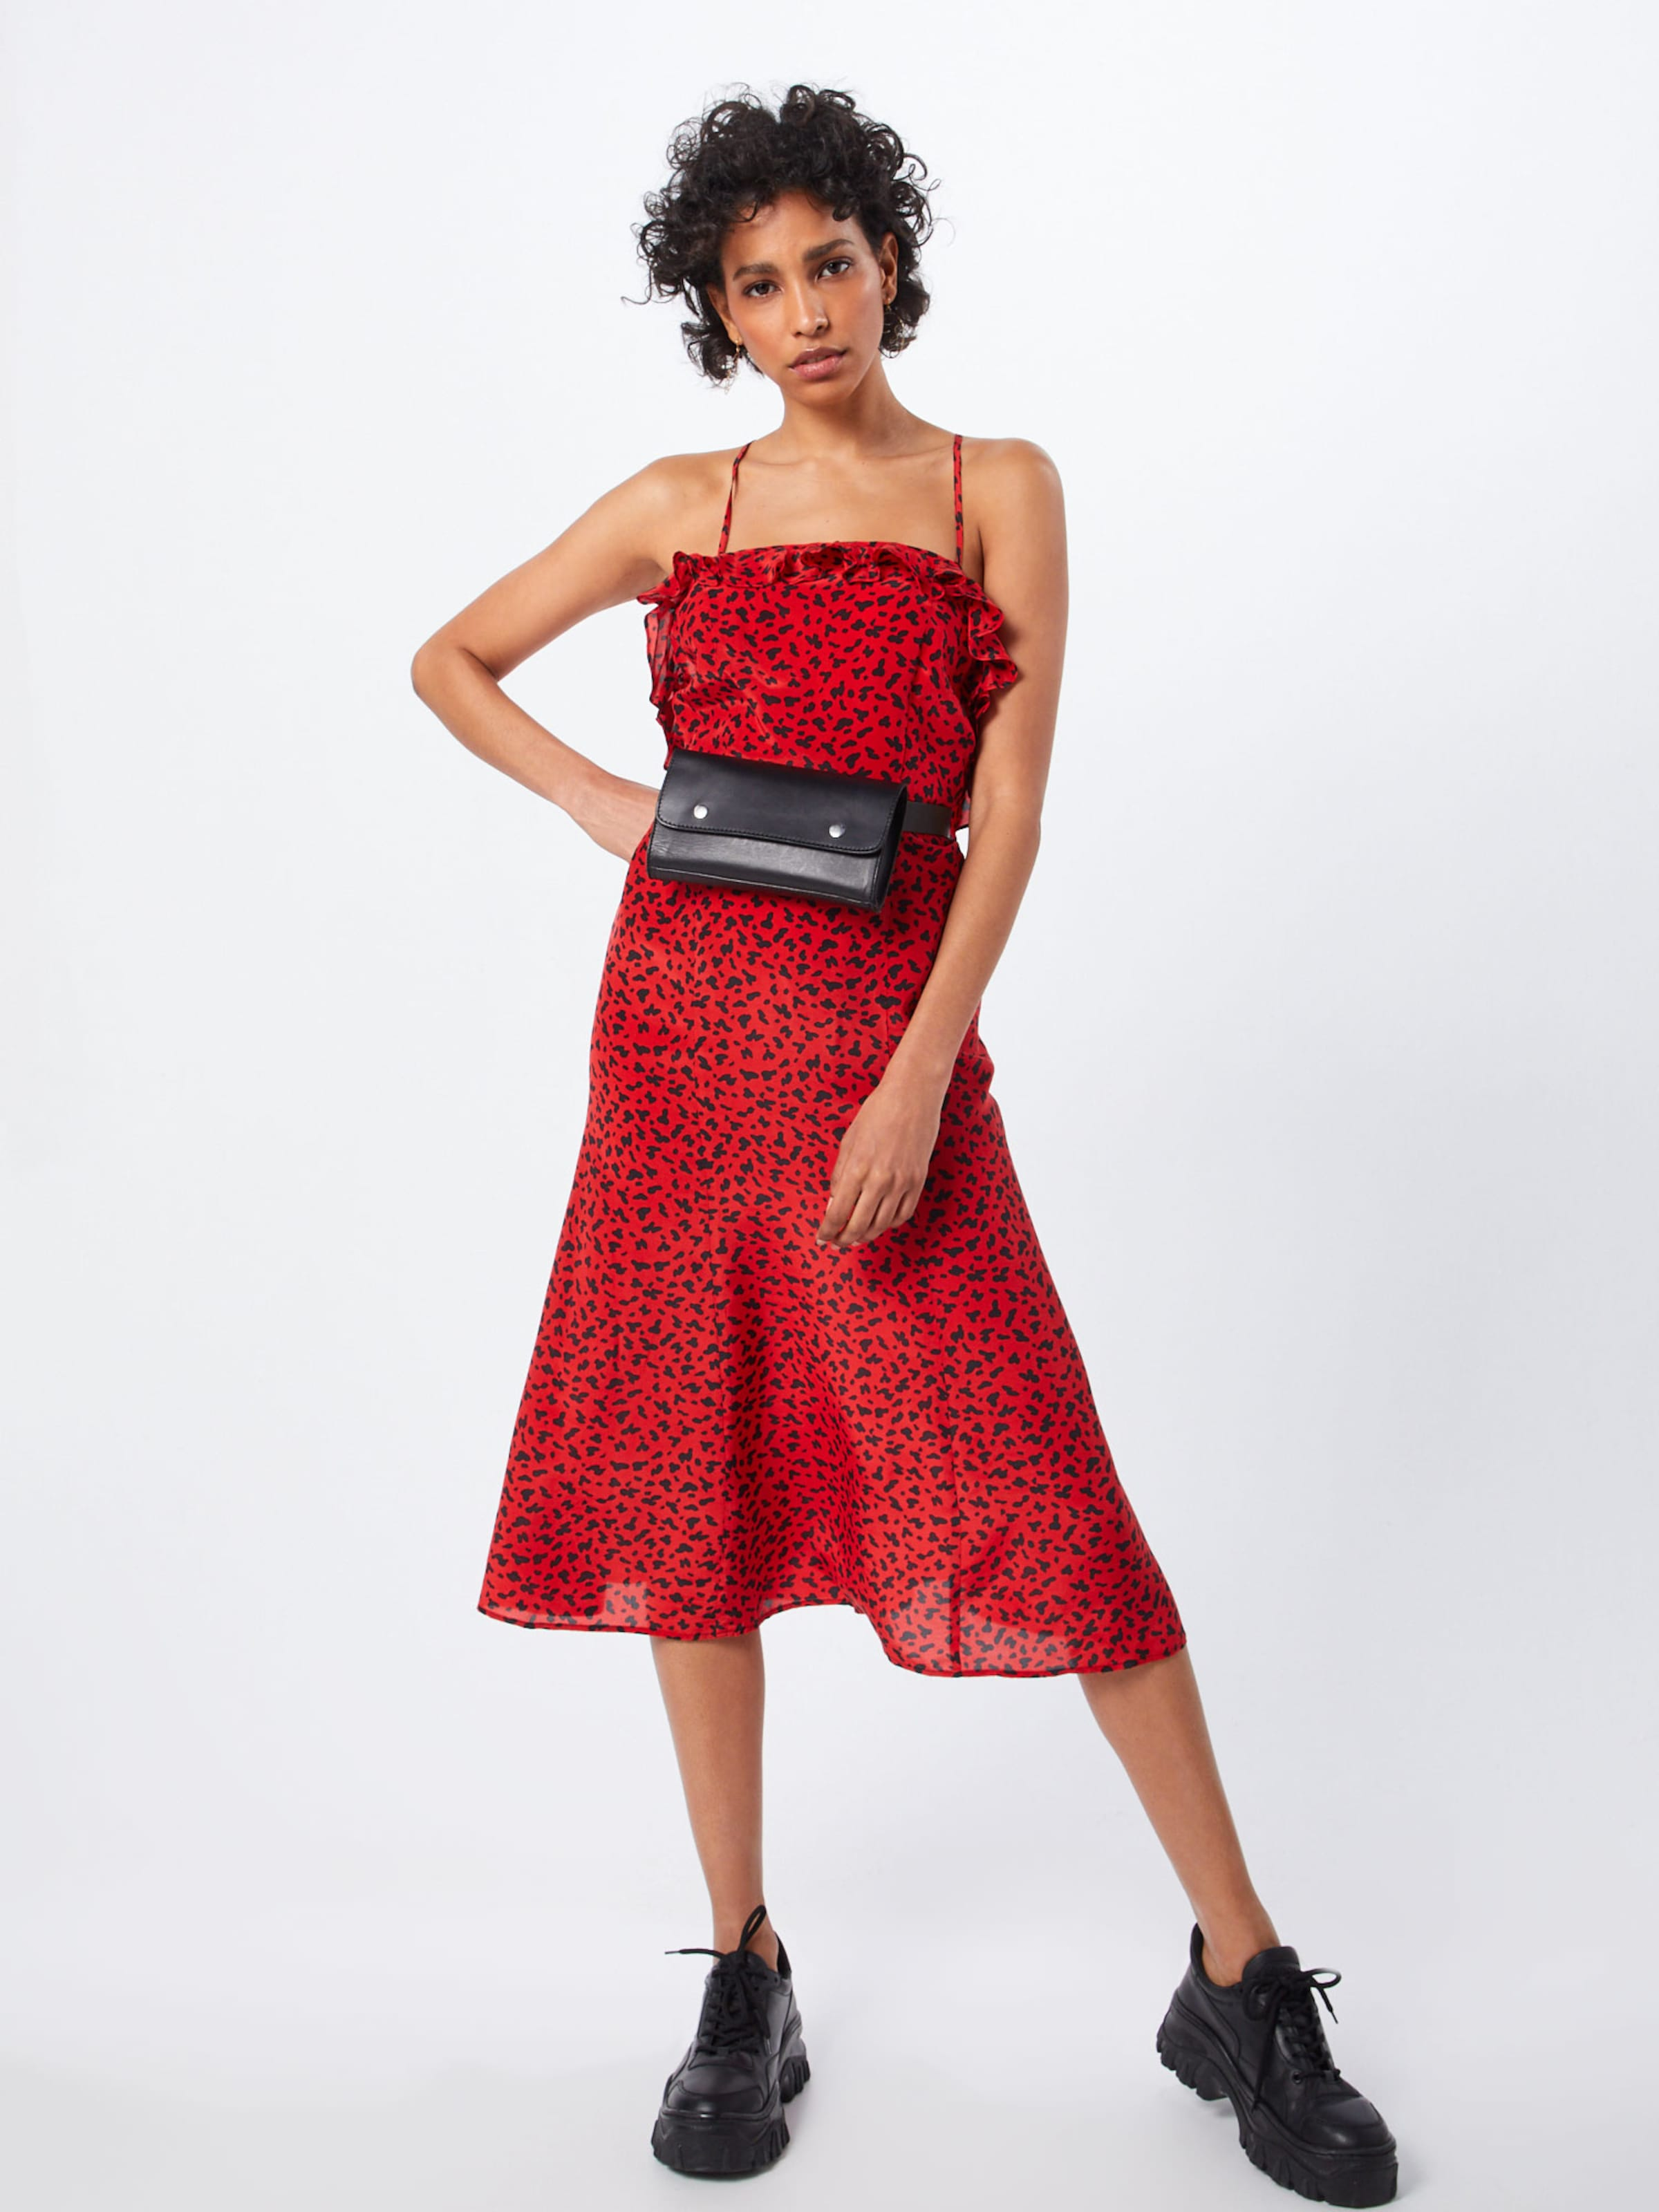 Sport Kooples D'été Robe The En Rouge SMpqUGzV